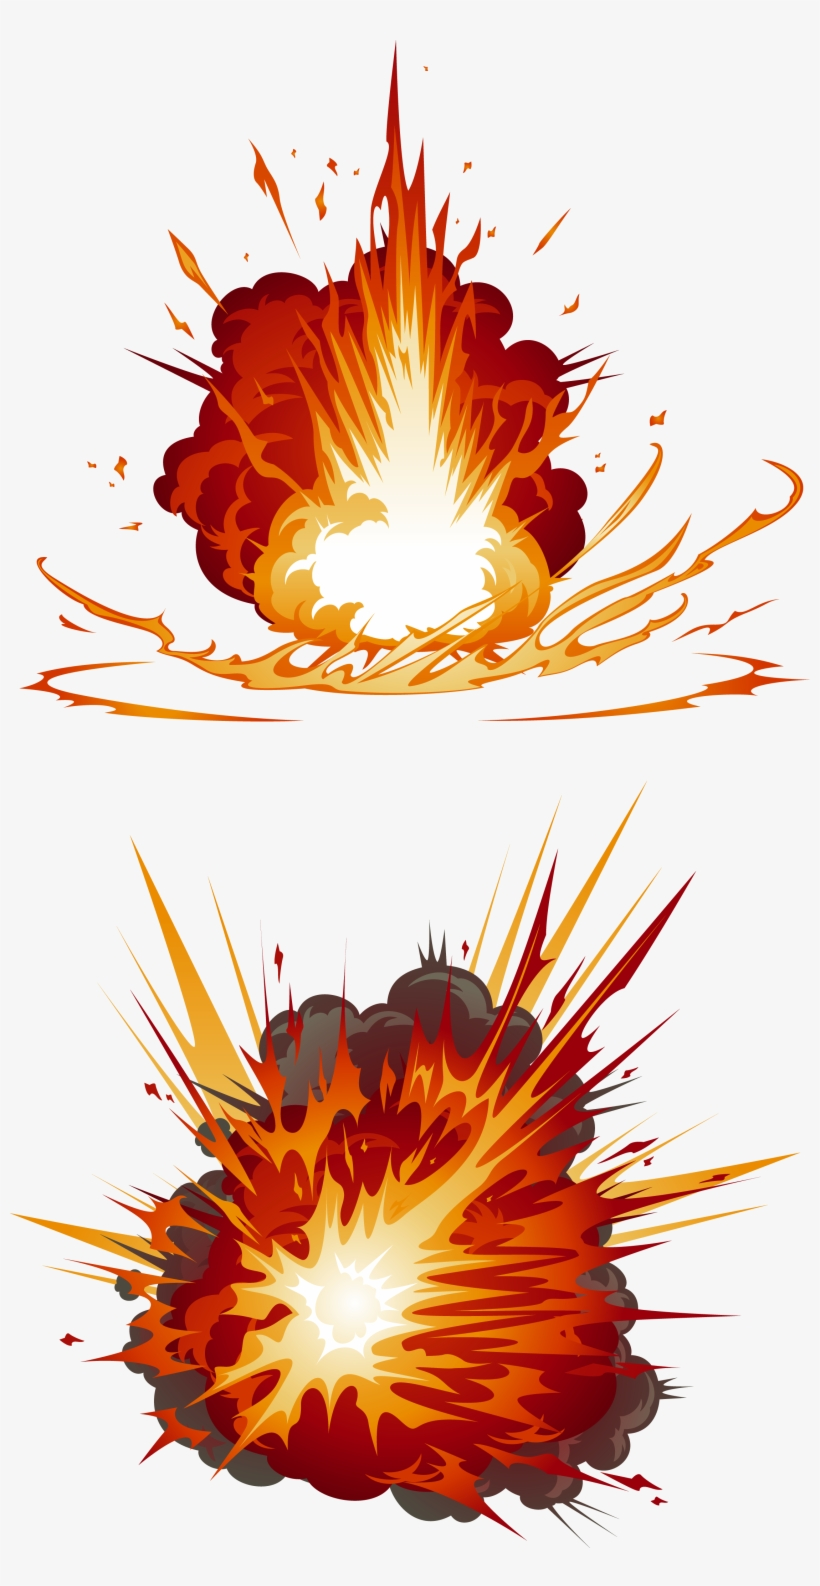 My Explosion Firecracker Explosions - Explosion Fire Cartoon Png, transparent png #4687388